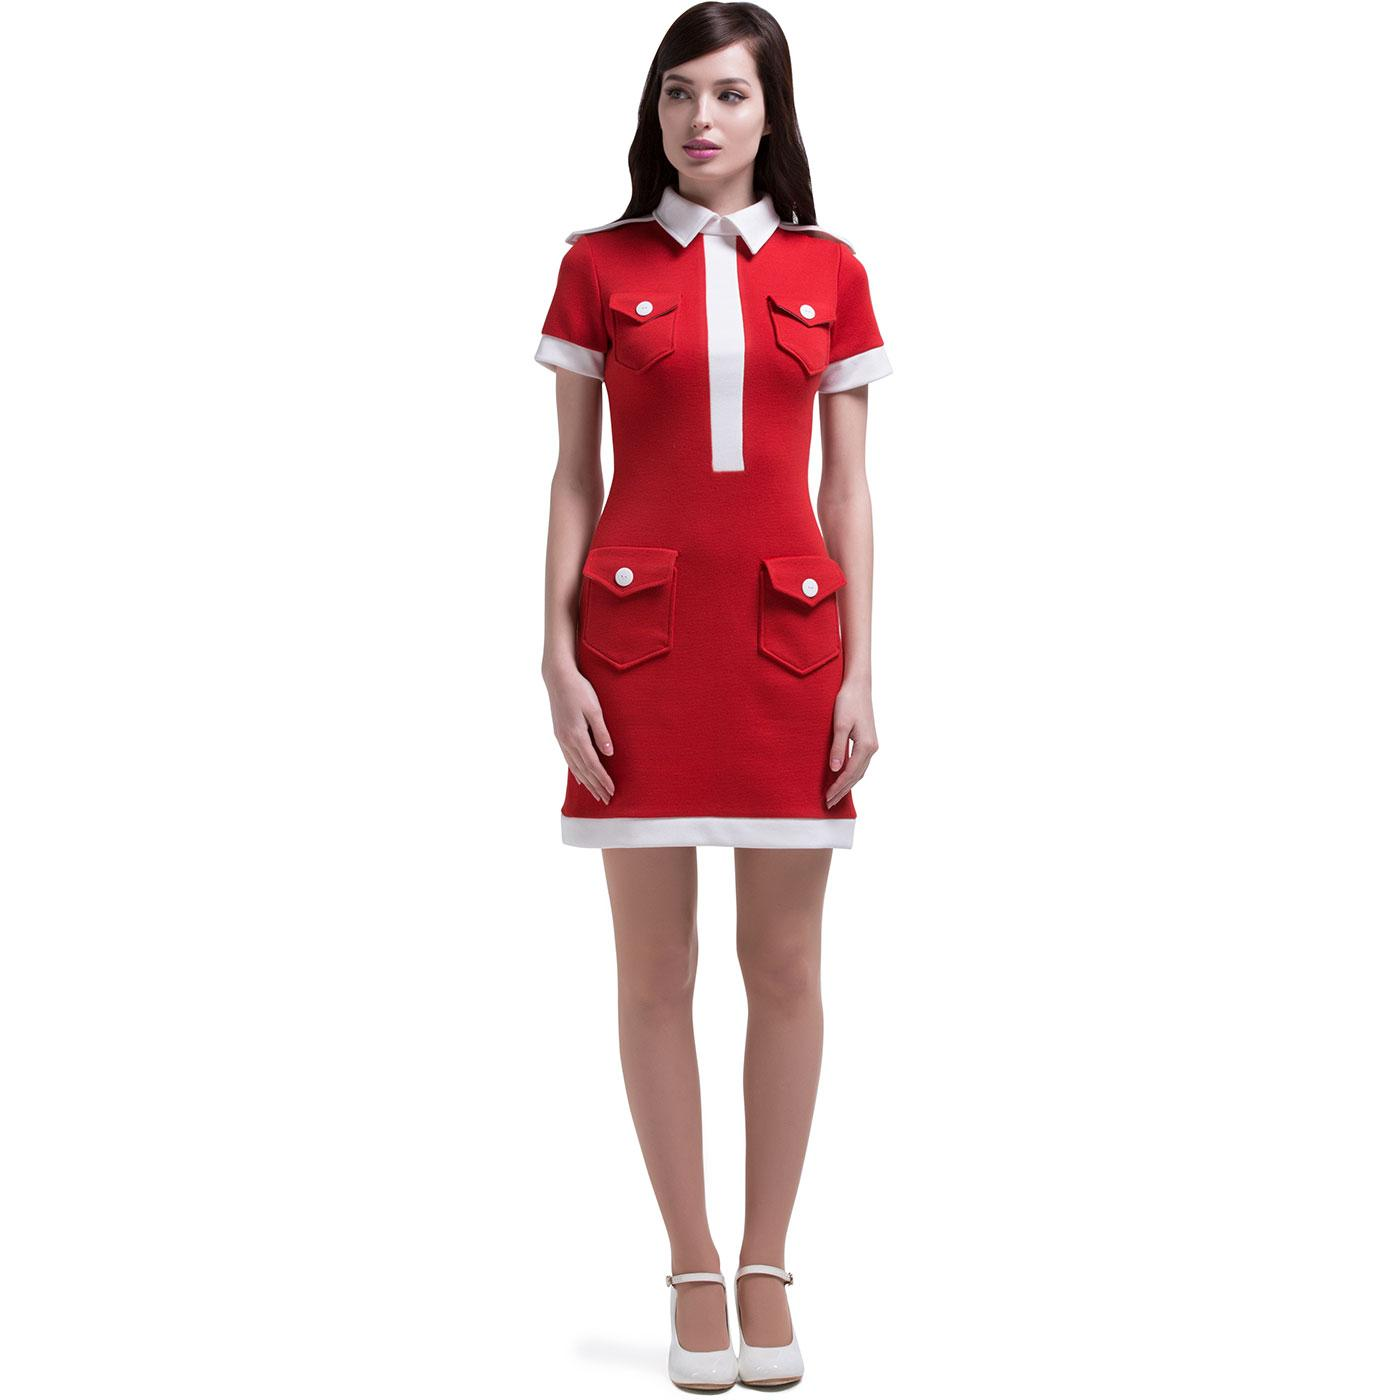 MARMALADE Retro 60s Mod Military Pocket Dress Red